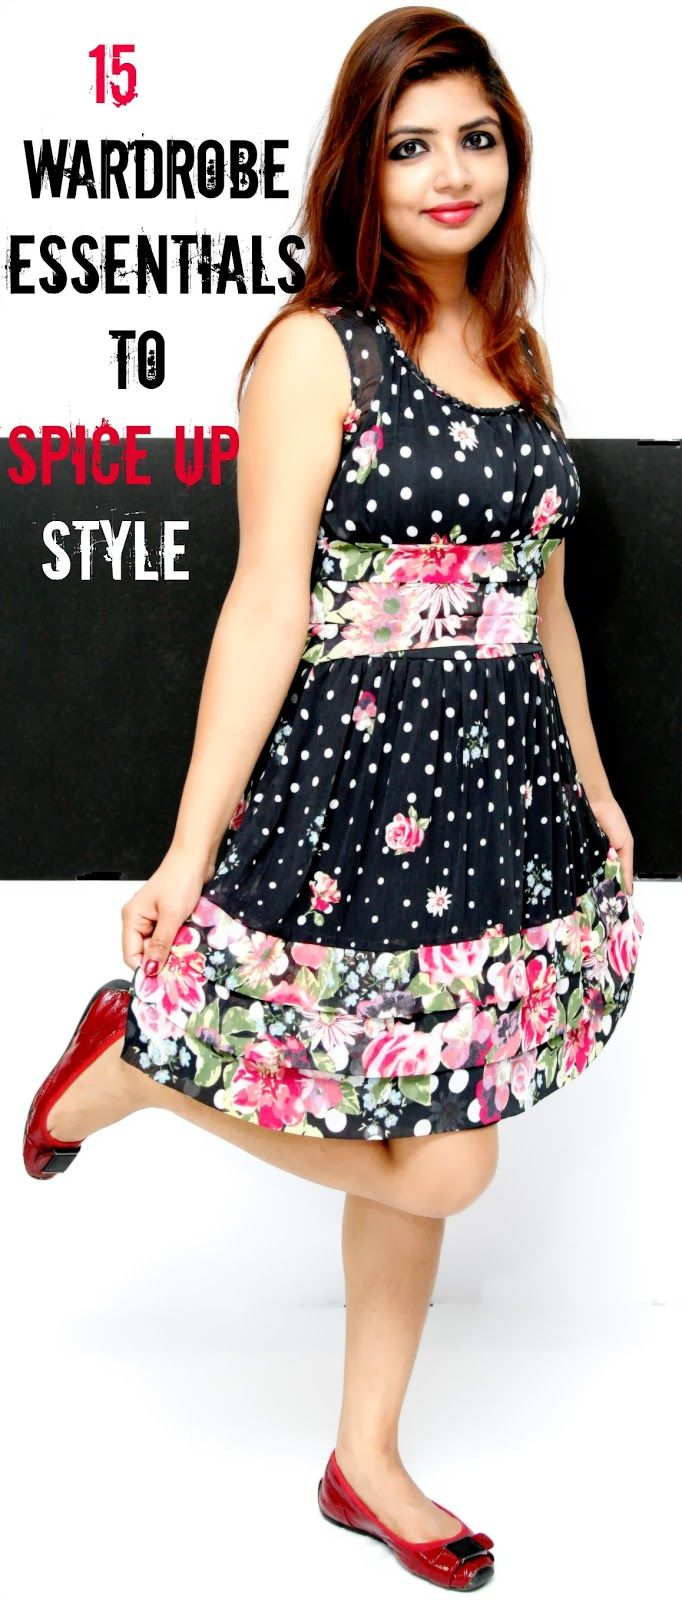 Wardrobe essentials to spice up your style which you will always need to satisfy your daily fashion appetite. http://www.spiceupboringlife.com/